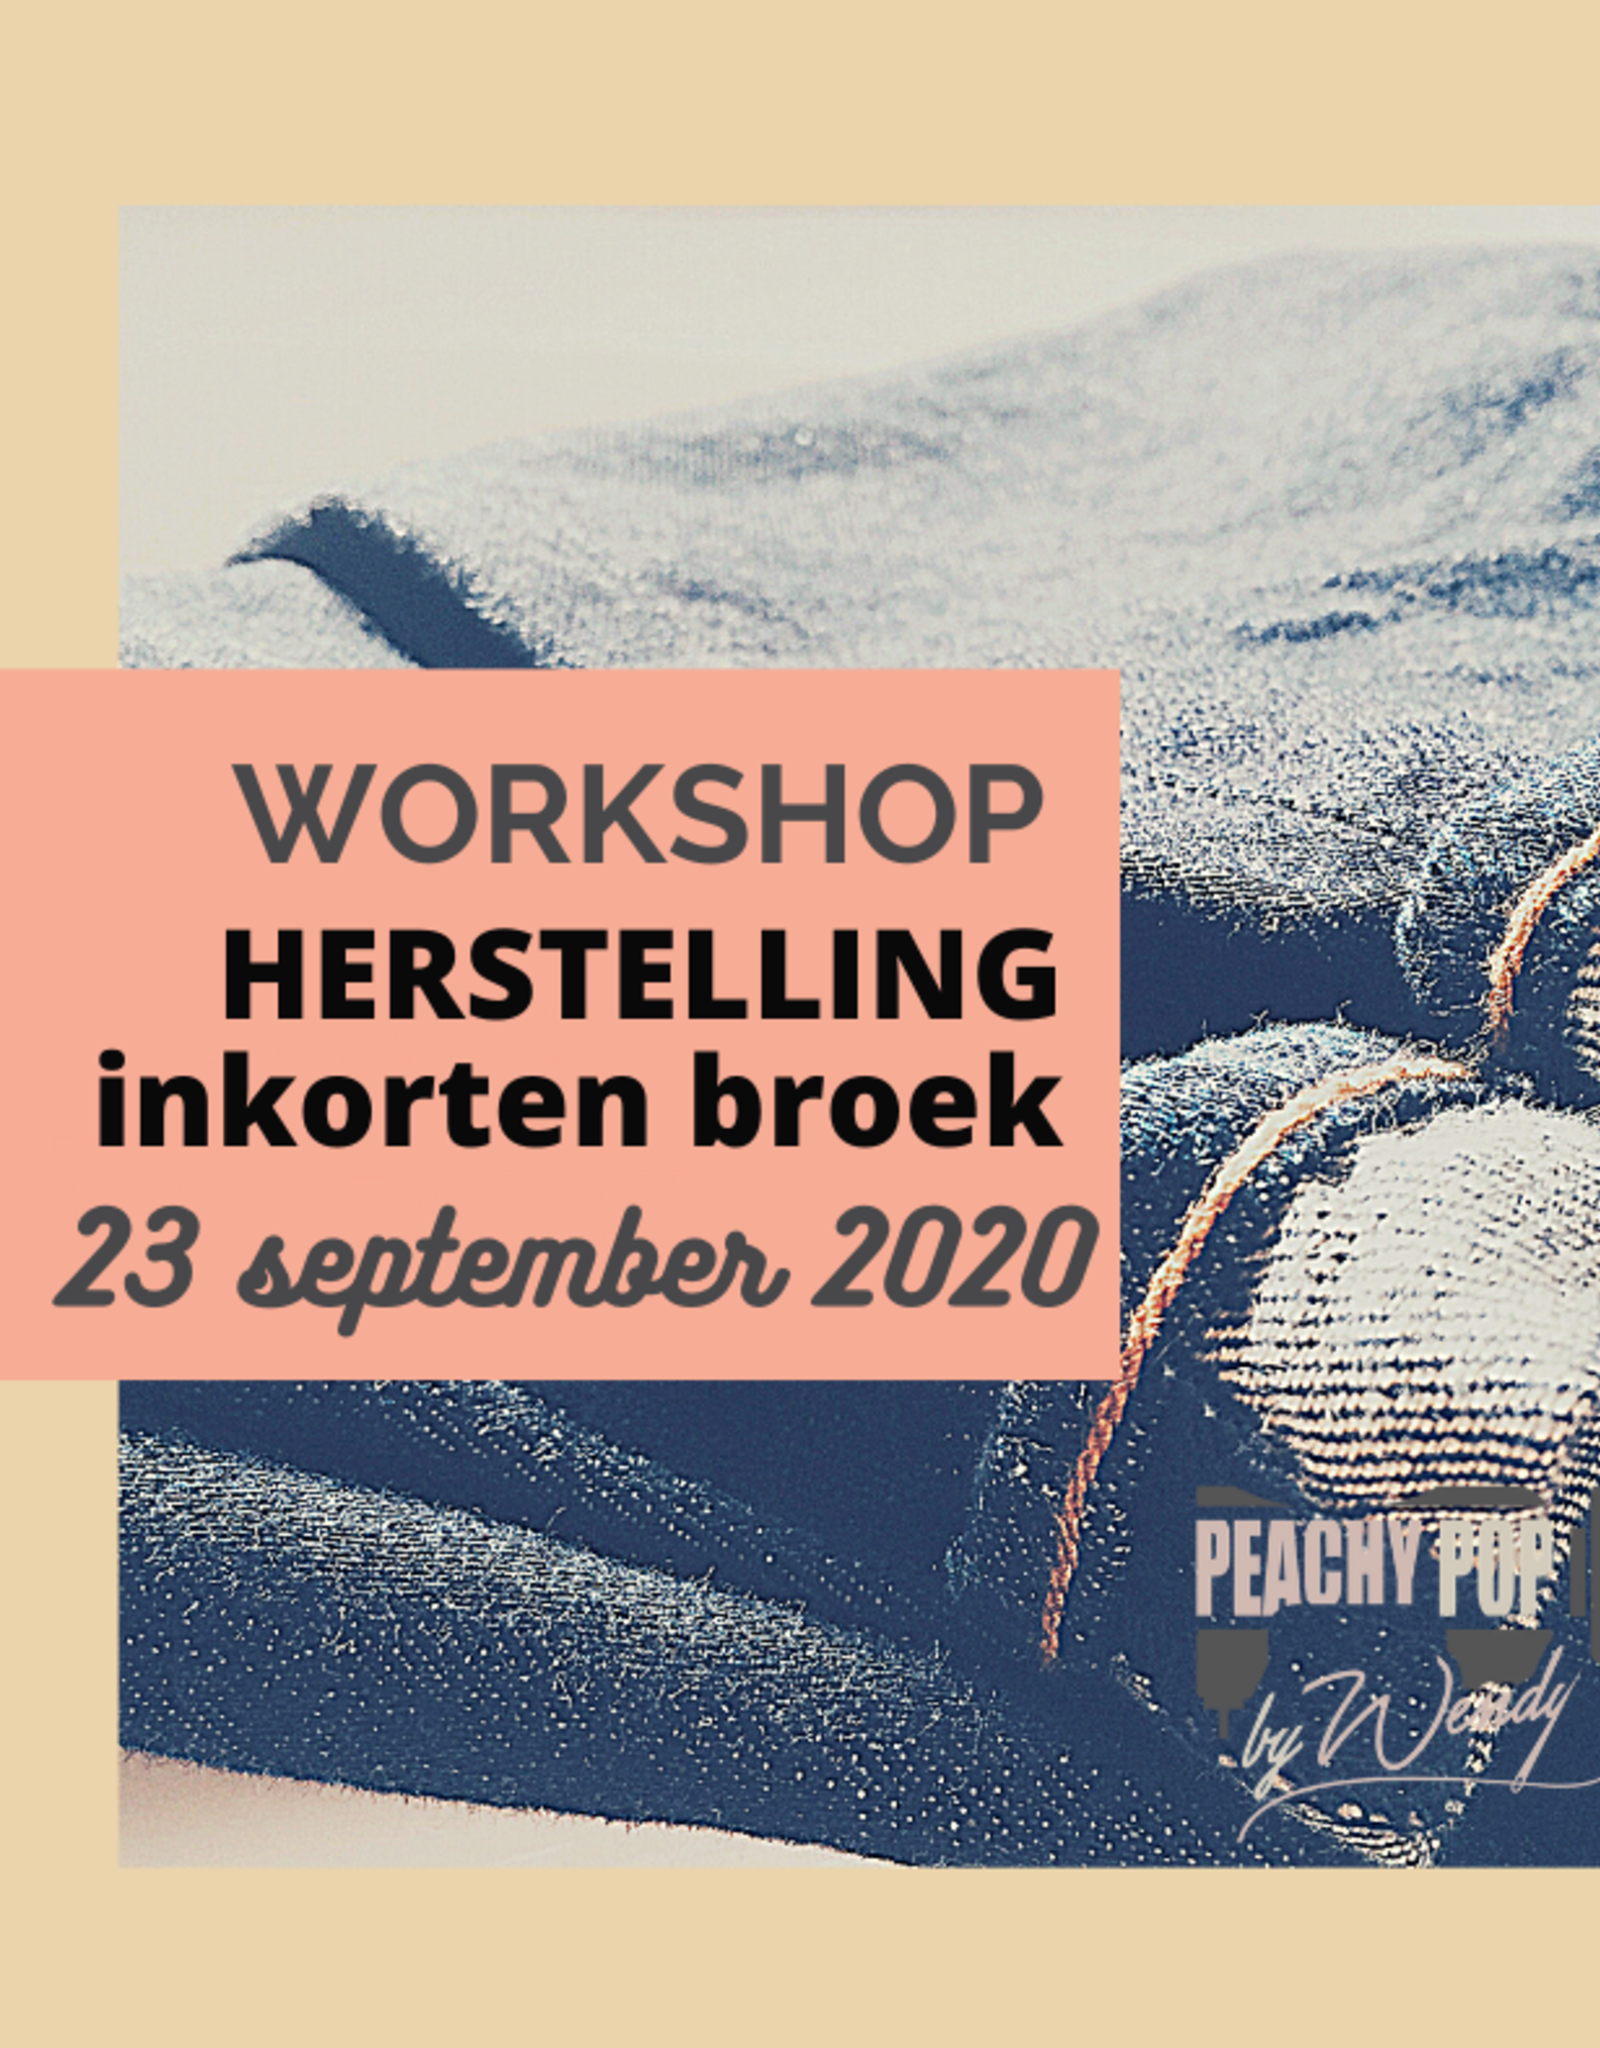 Workshop Herstelling: inkorten broek  23/09/2020